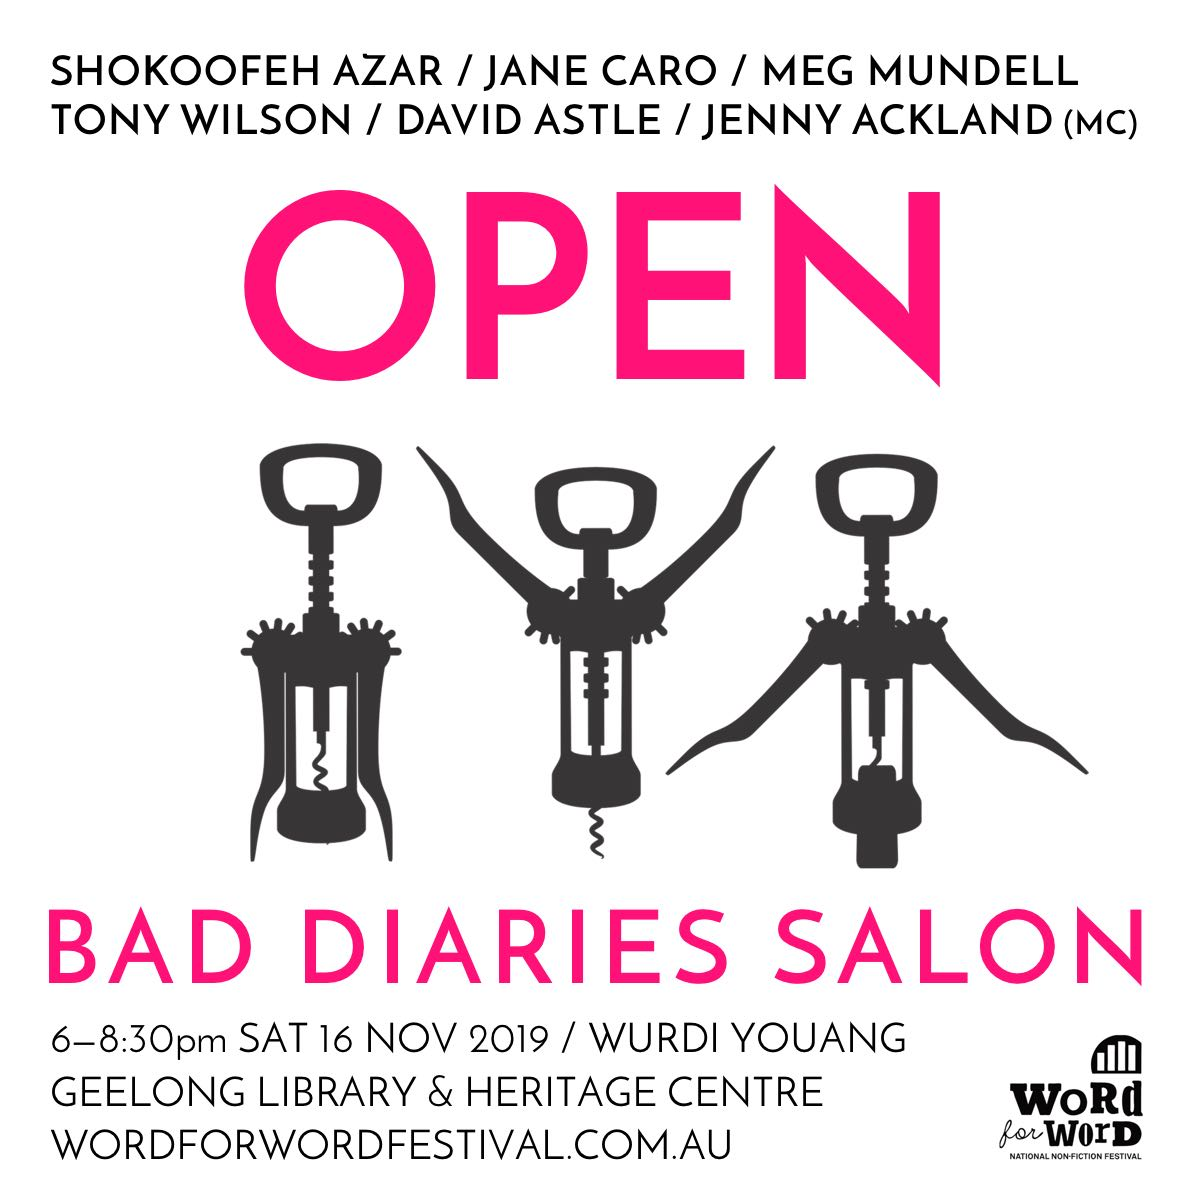 Diaries-OPEN-W4W2019-Geelong-square-REVISED